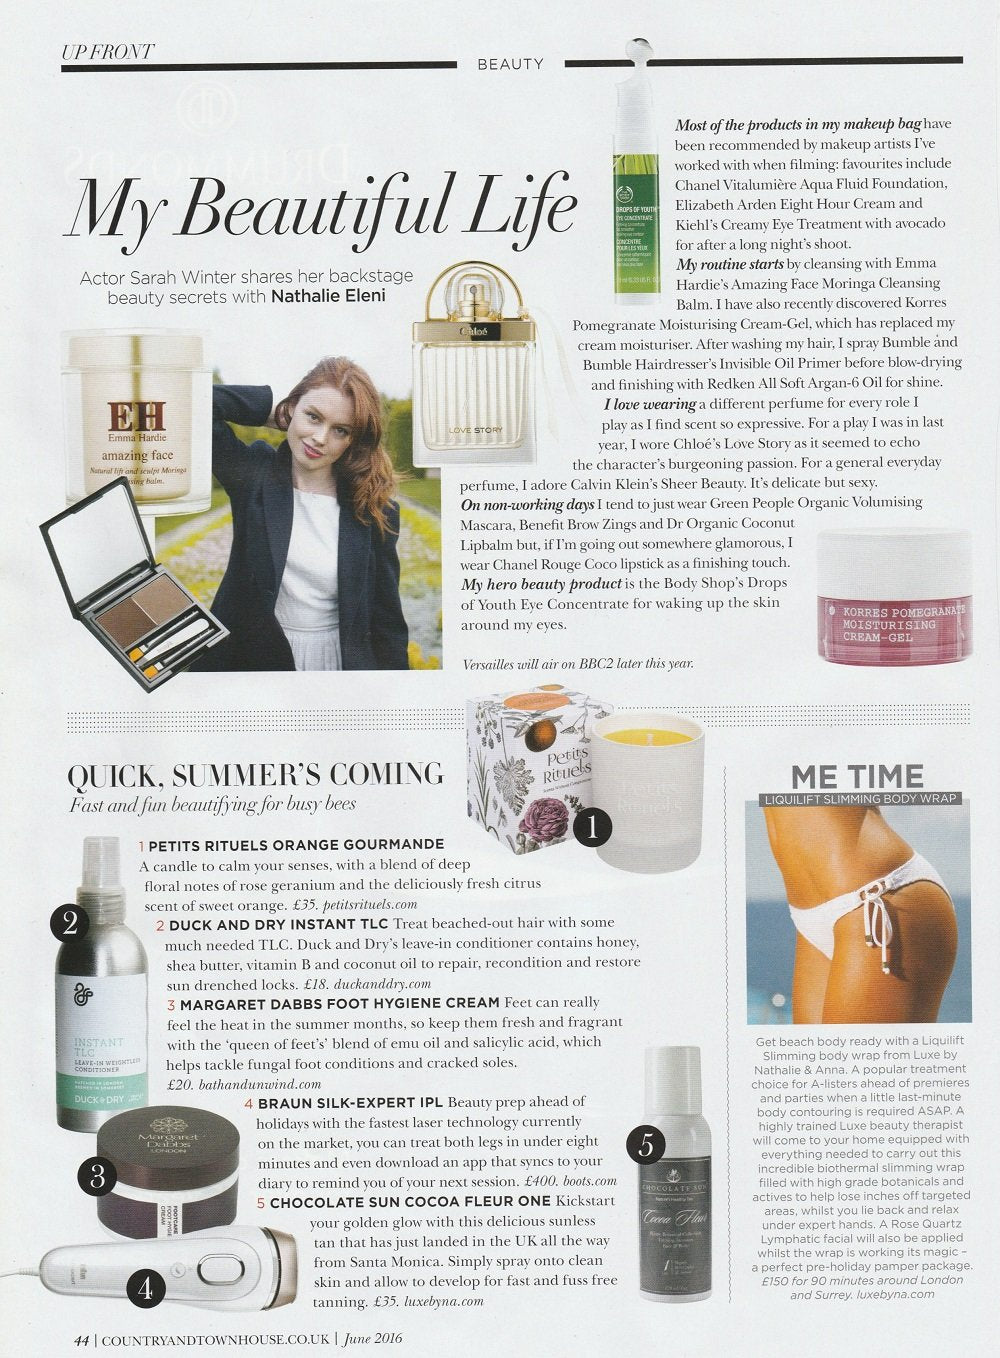 Town & Country house feature of the Orange Gourmande candle.